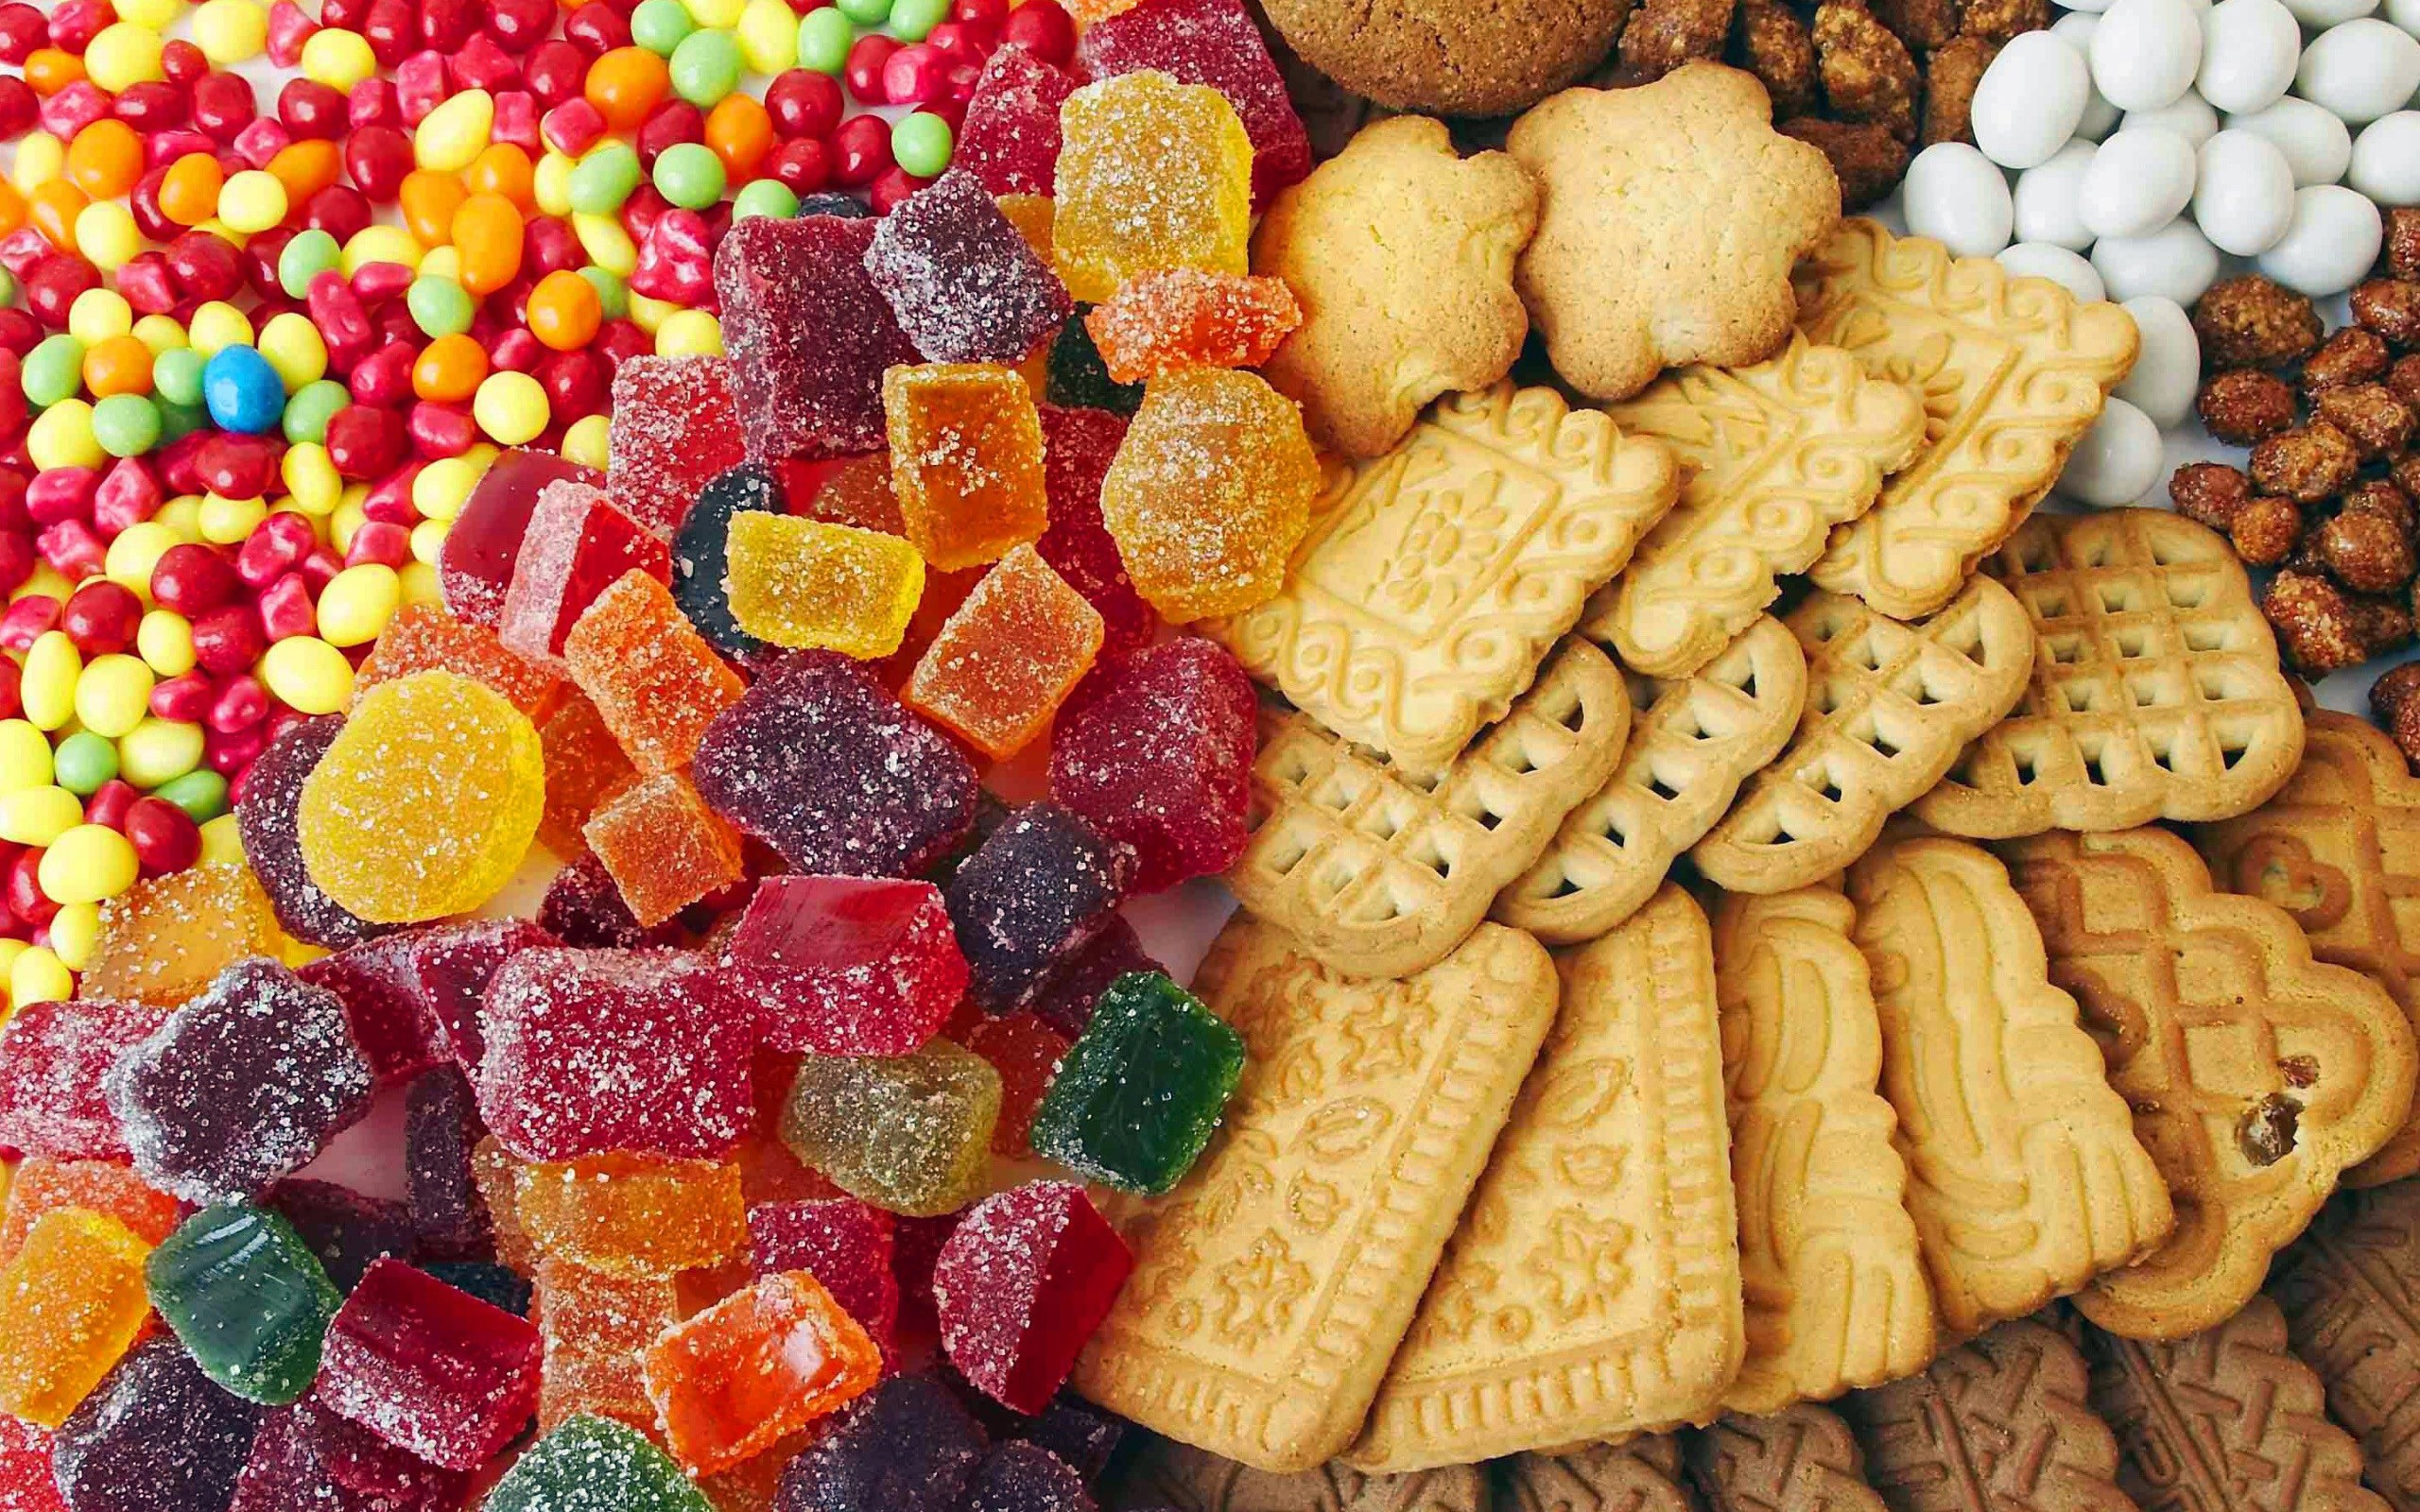 sweets-candy-and-biscuits-hd-widescreen-wallpapers-